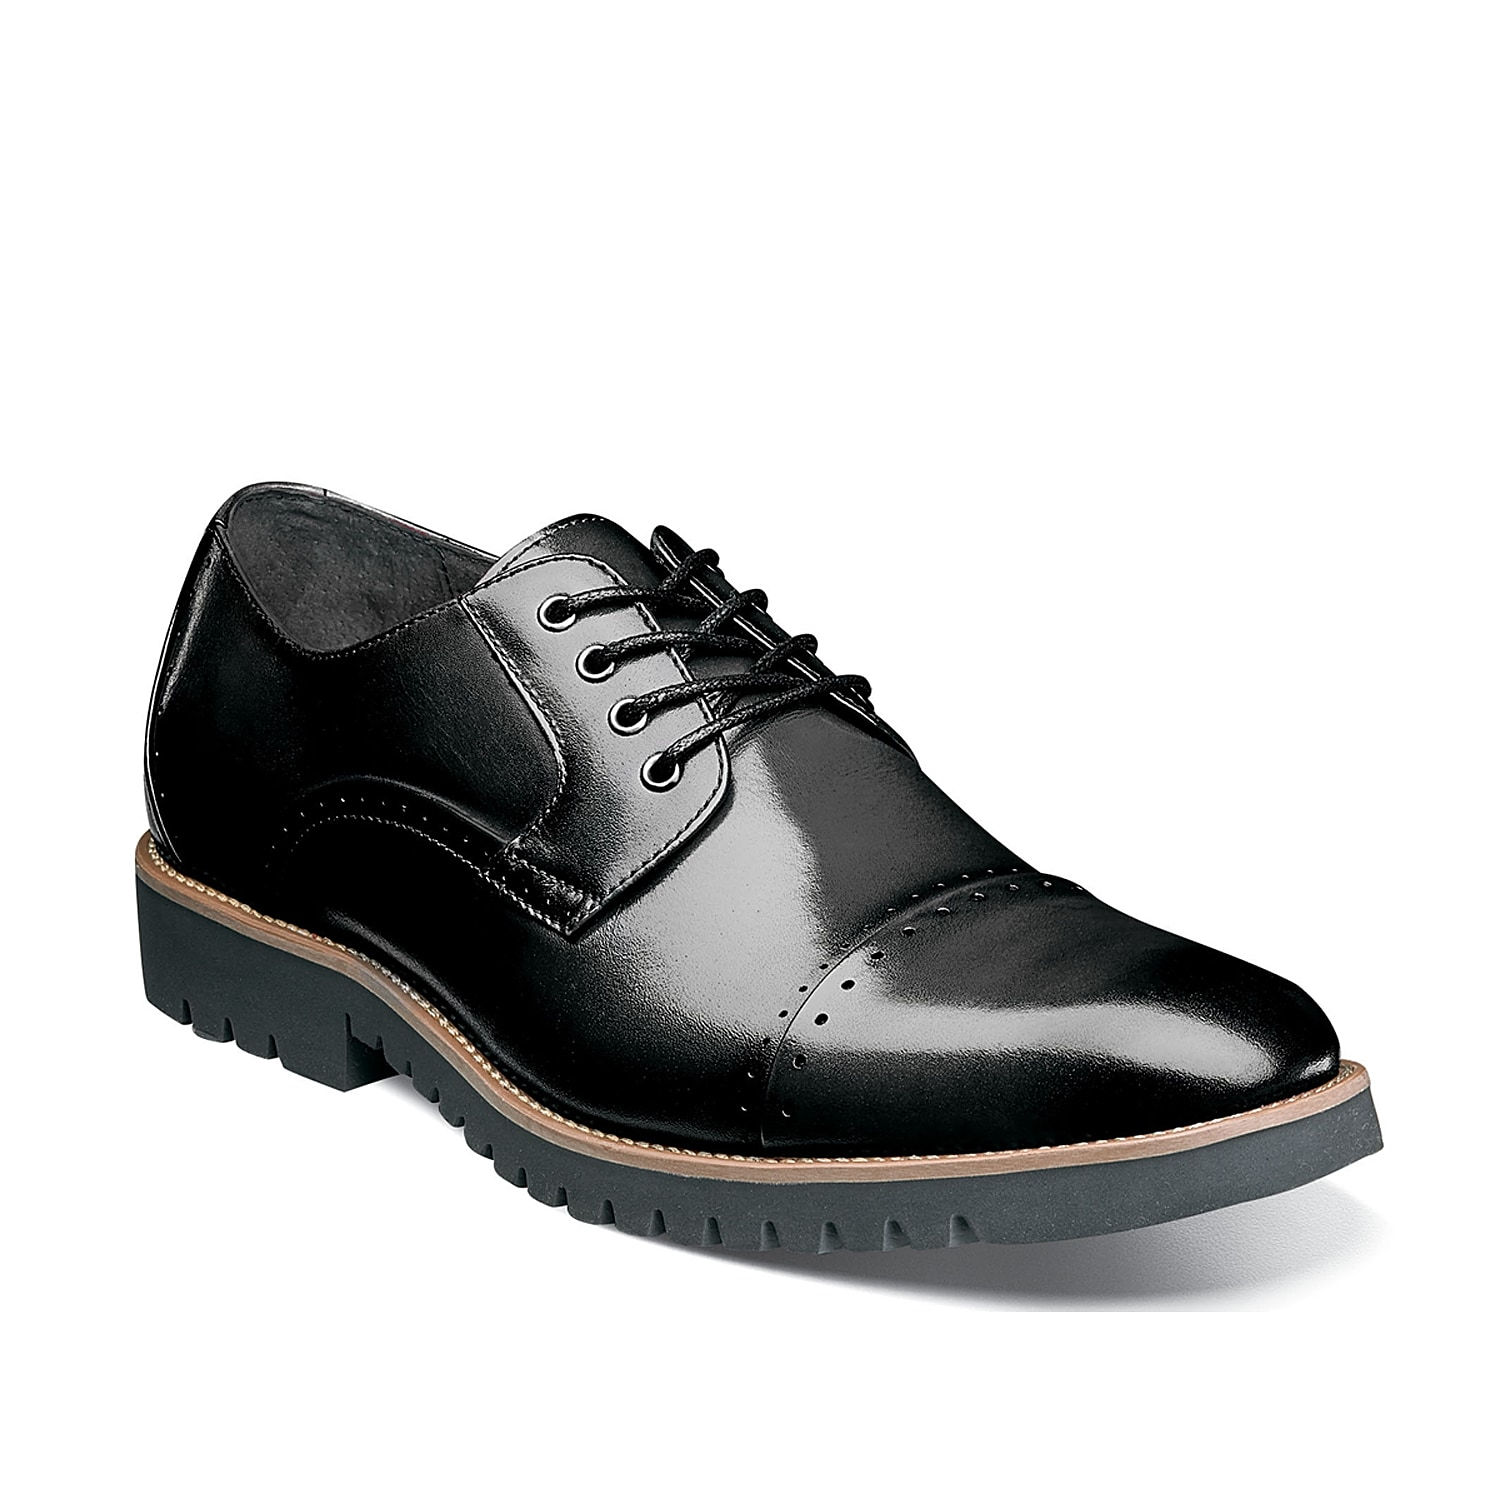 The Barcliff oxford from Stacy Adams is a quality pick for revamping your footwear collection. This dress shoe features leather patchwork panels and spotted brogue details that are accompanied by a lugged sole.